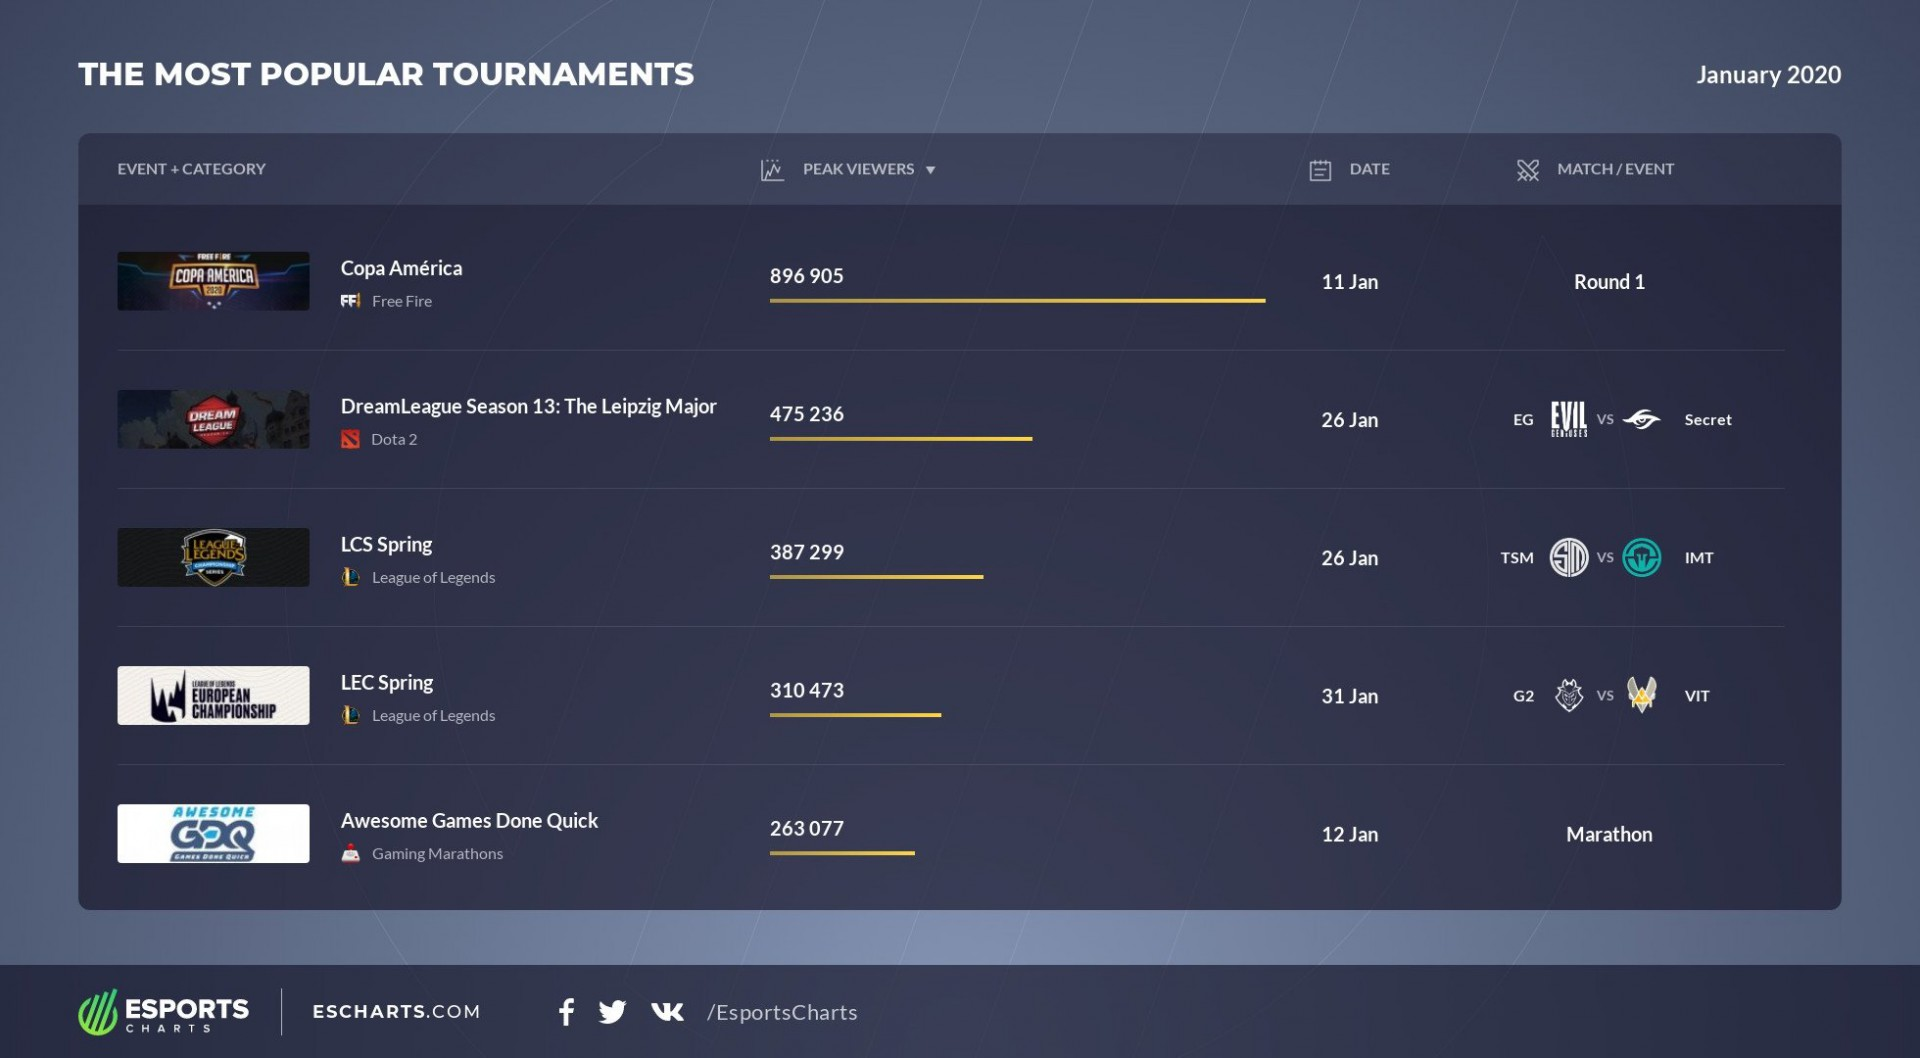 Most popular esports events January 2020